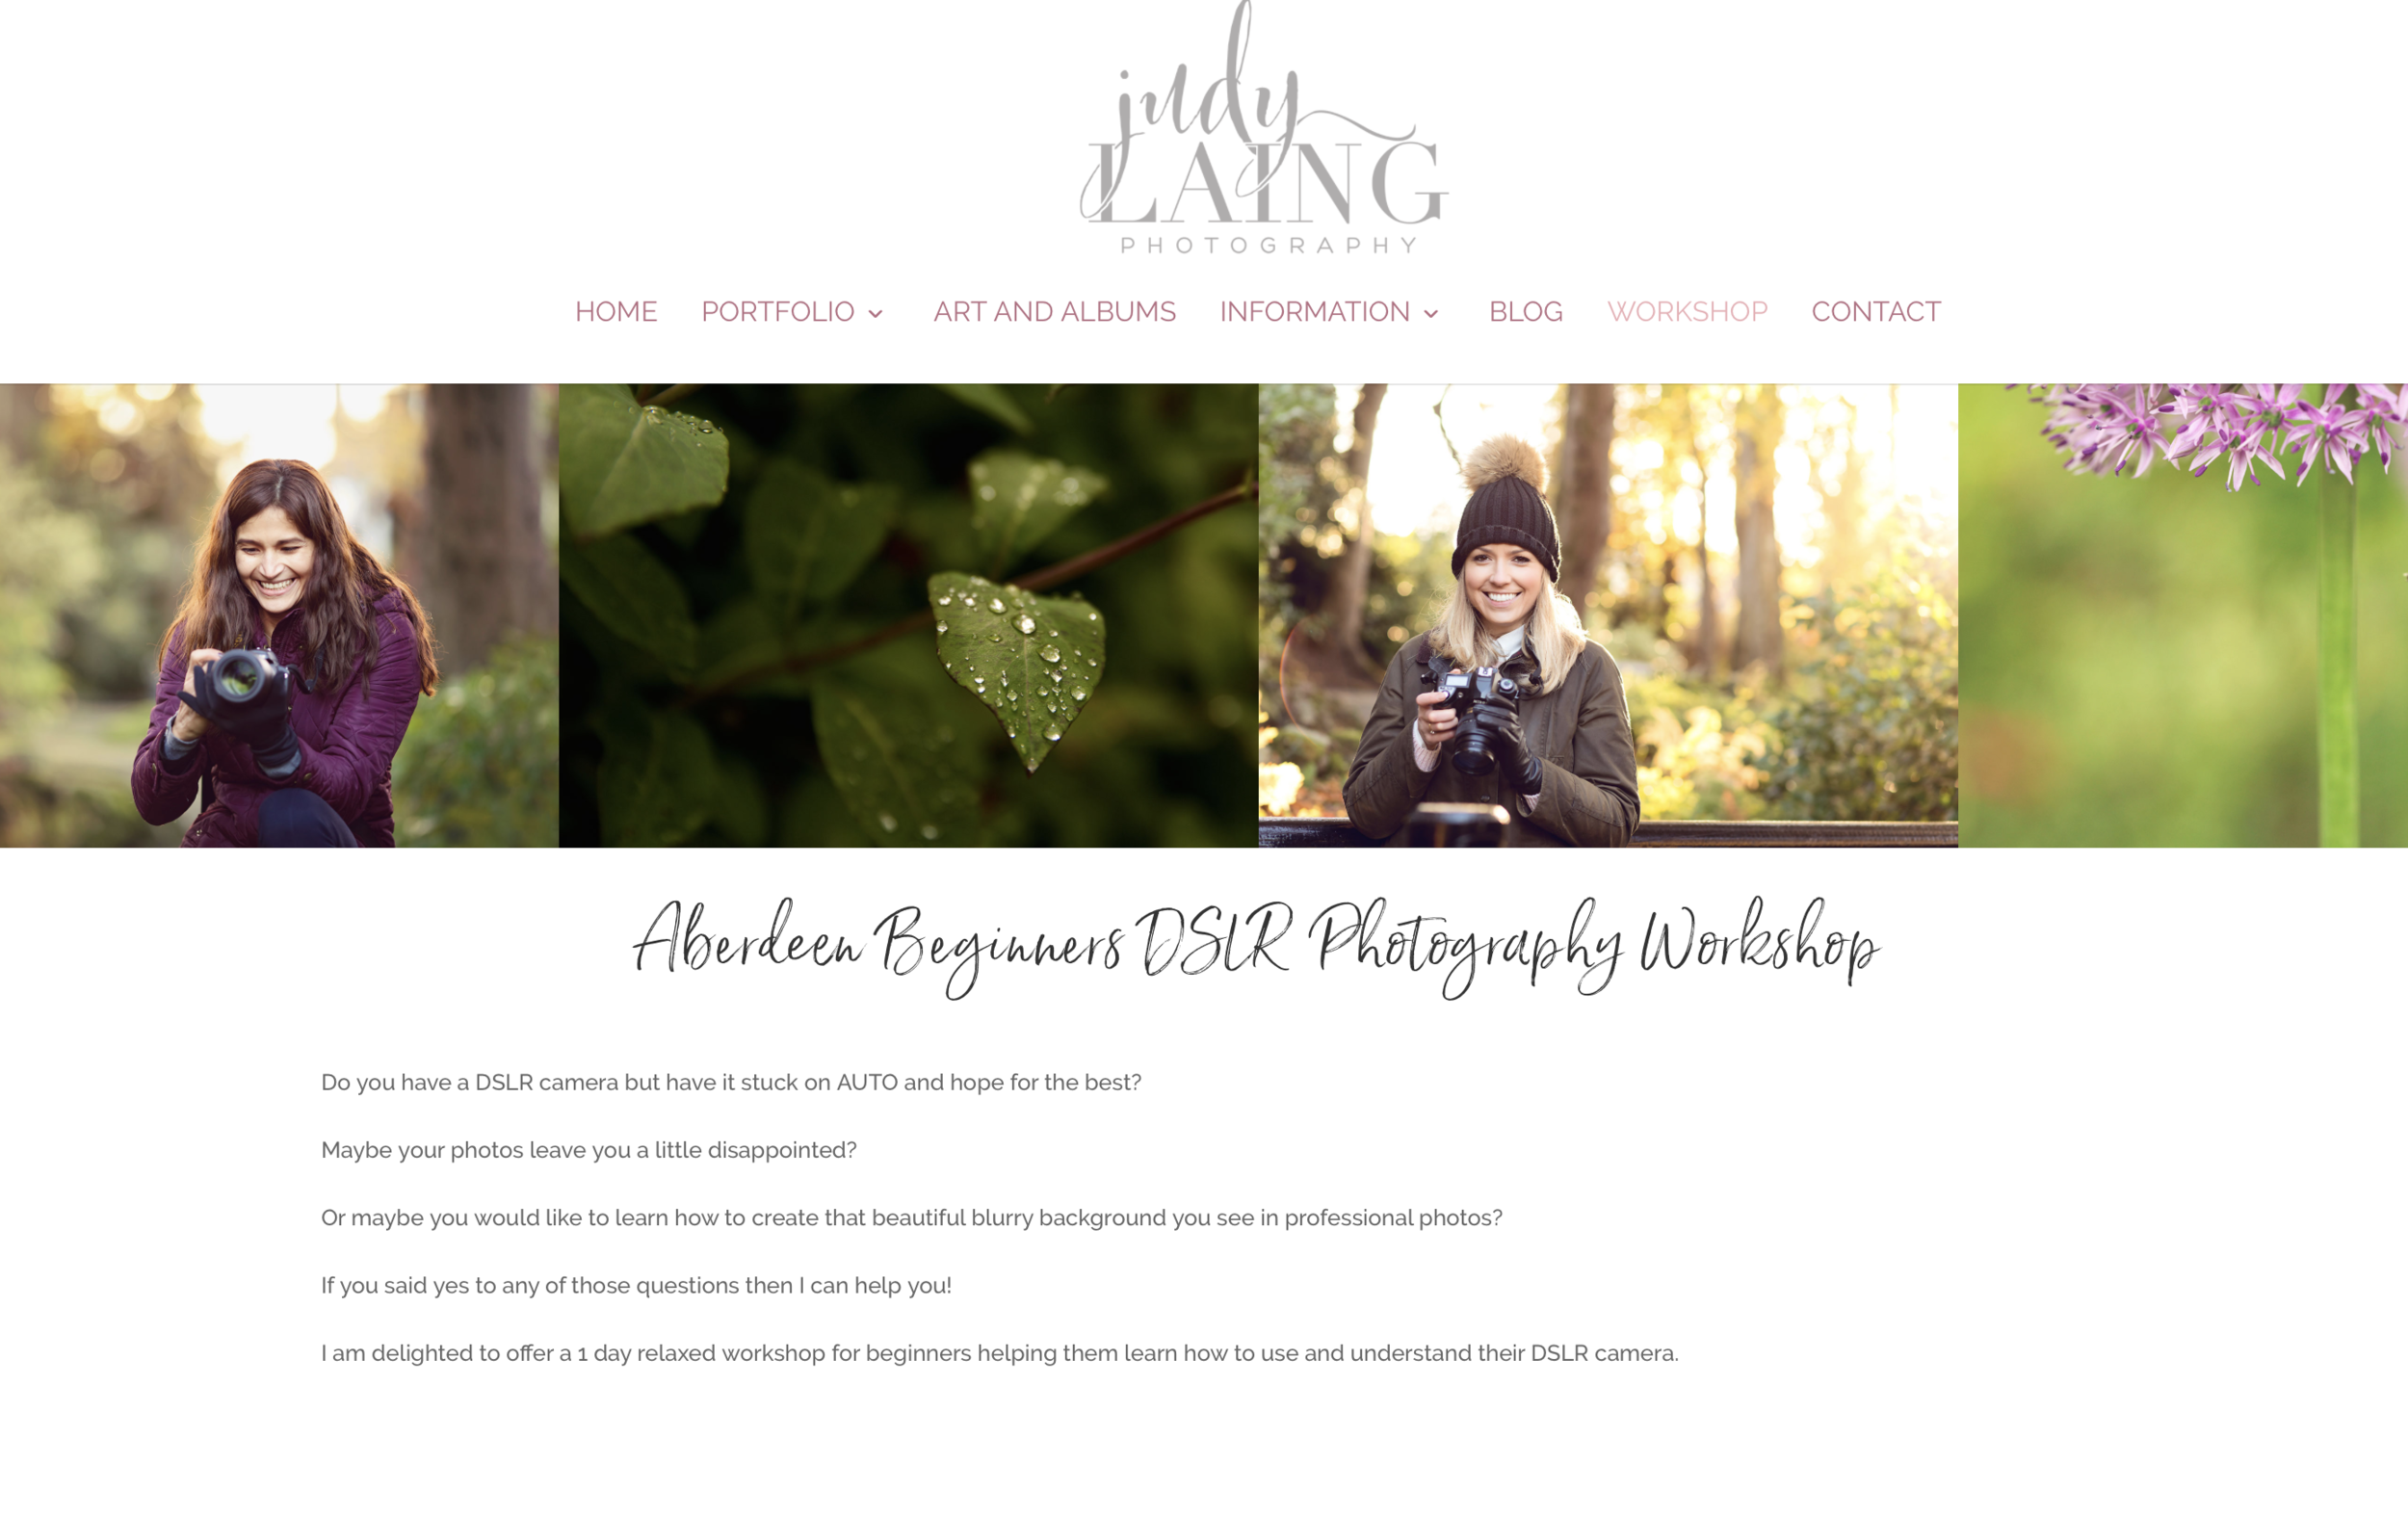 Judy Laing Introduction to photography course